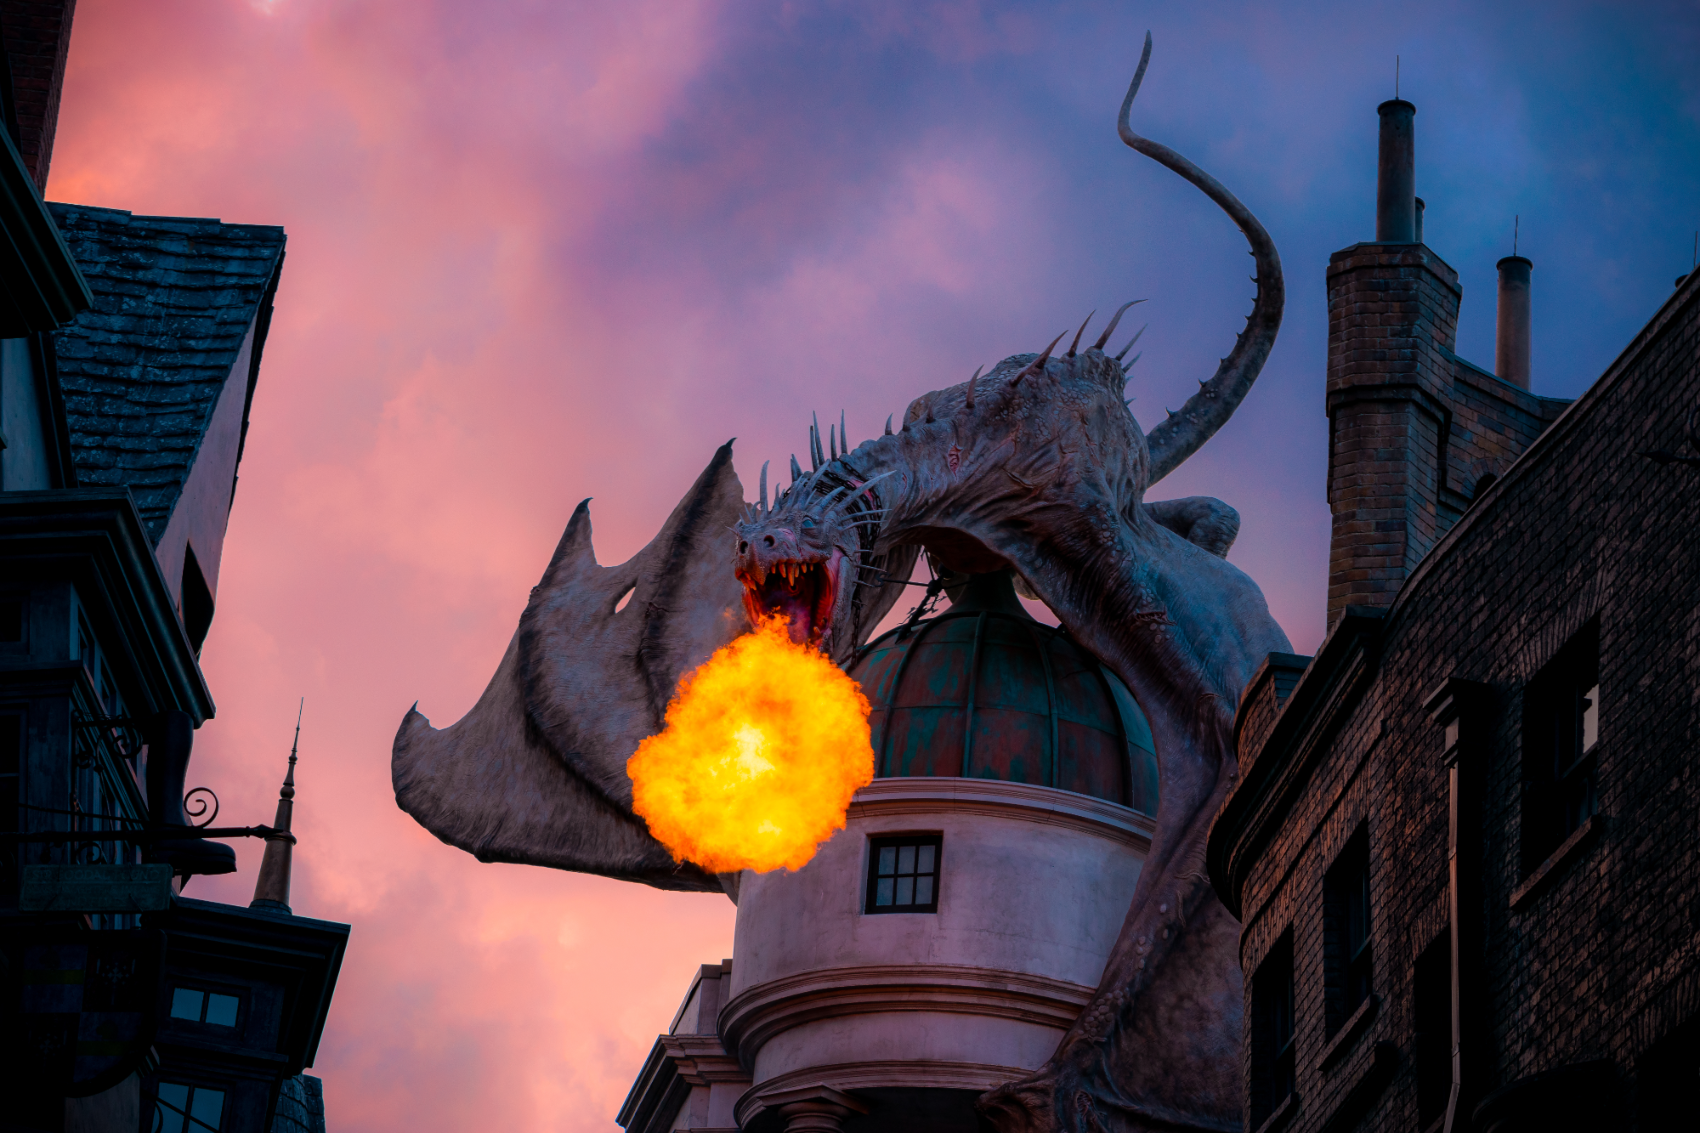 The dragon on Gringotts Bank in Diagon Alley